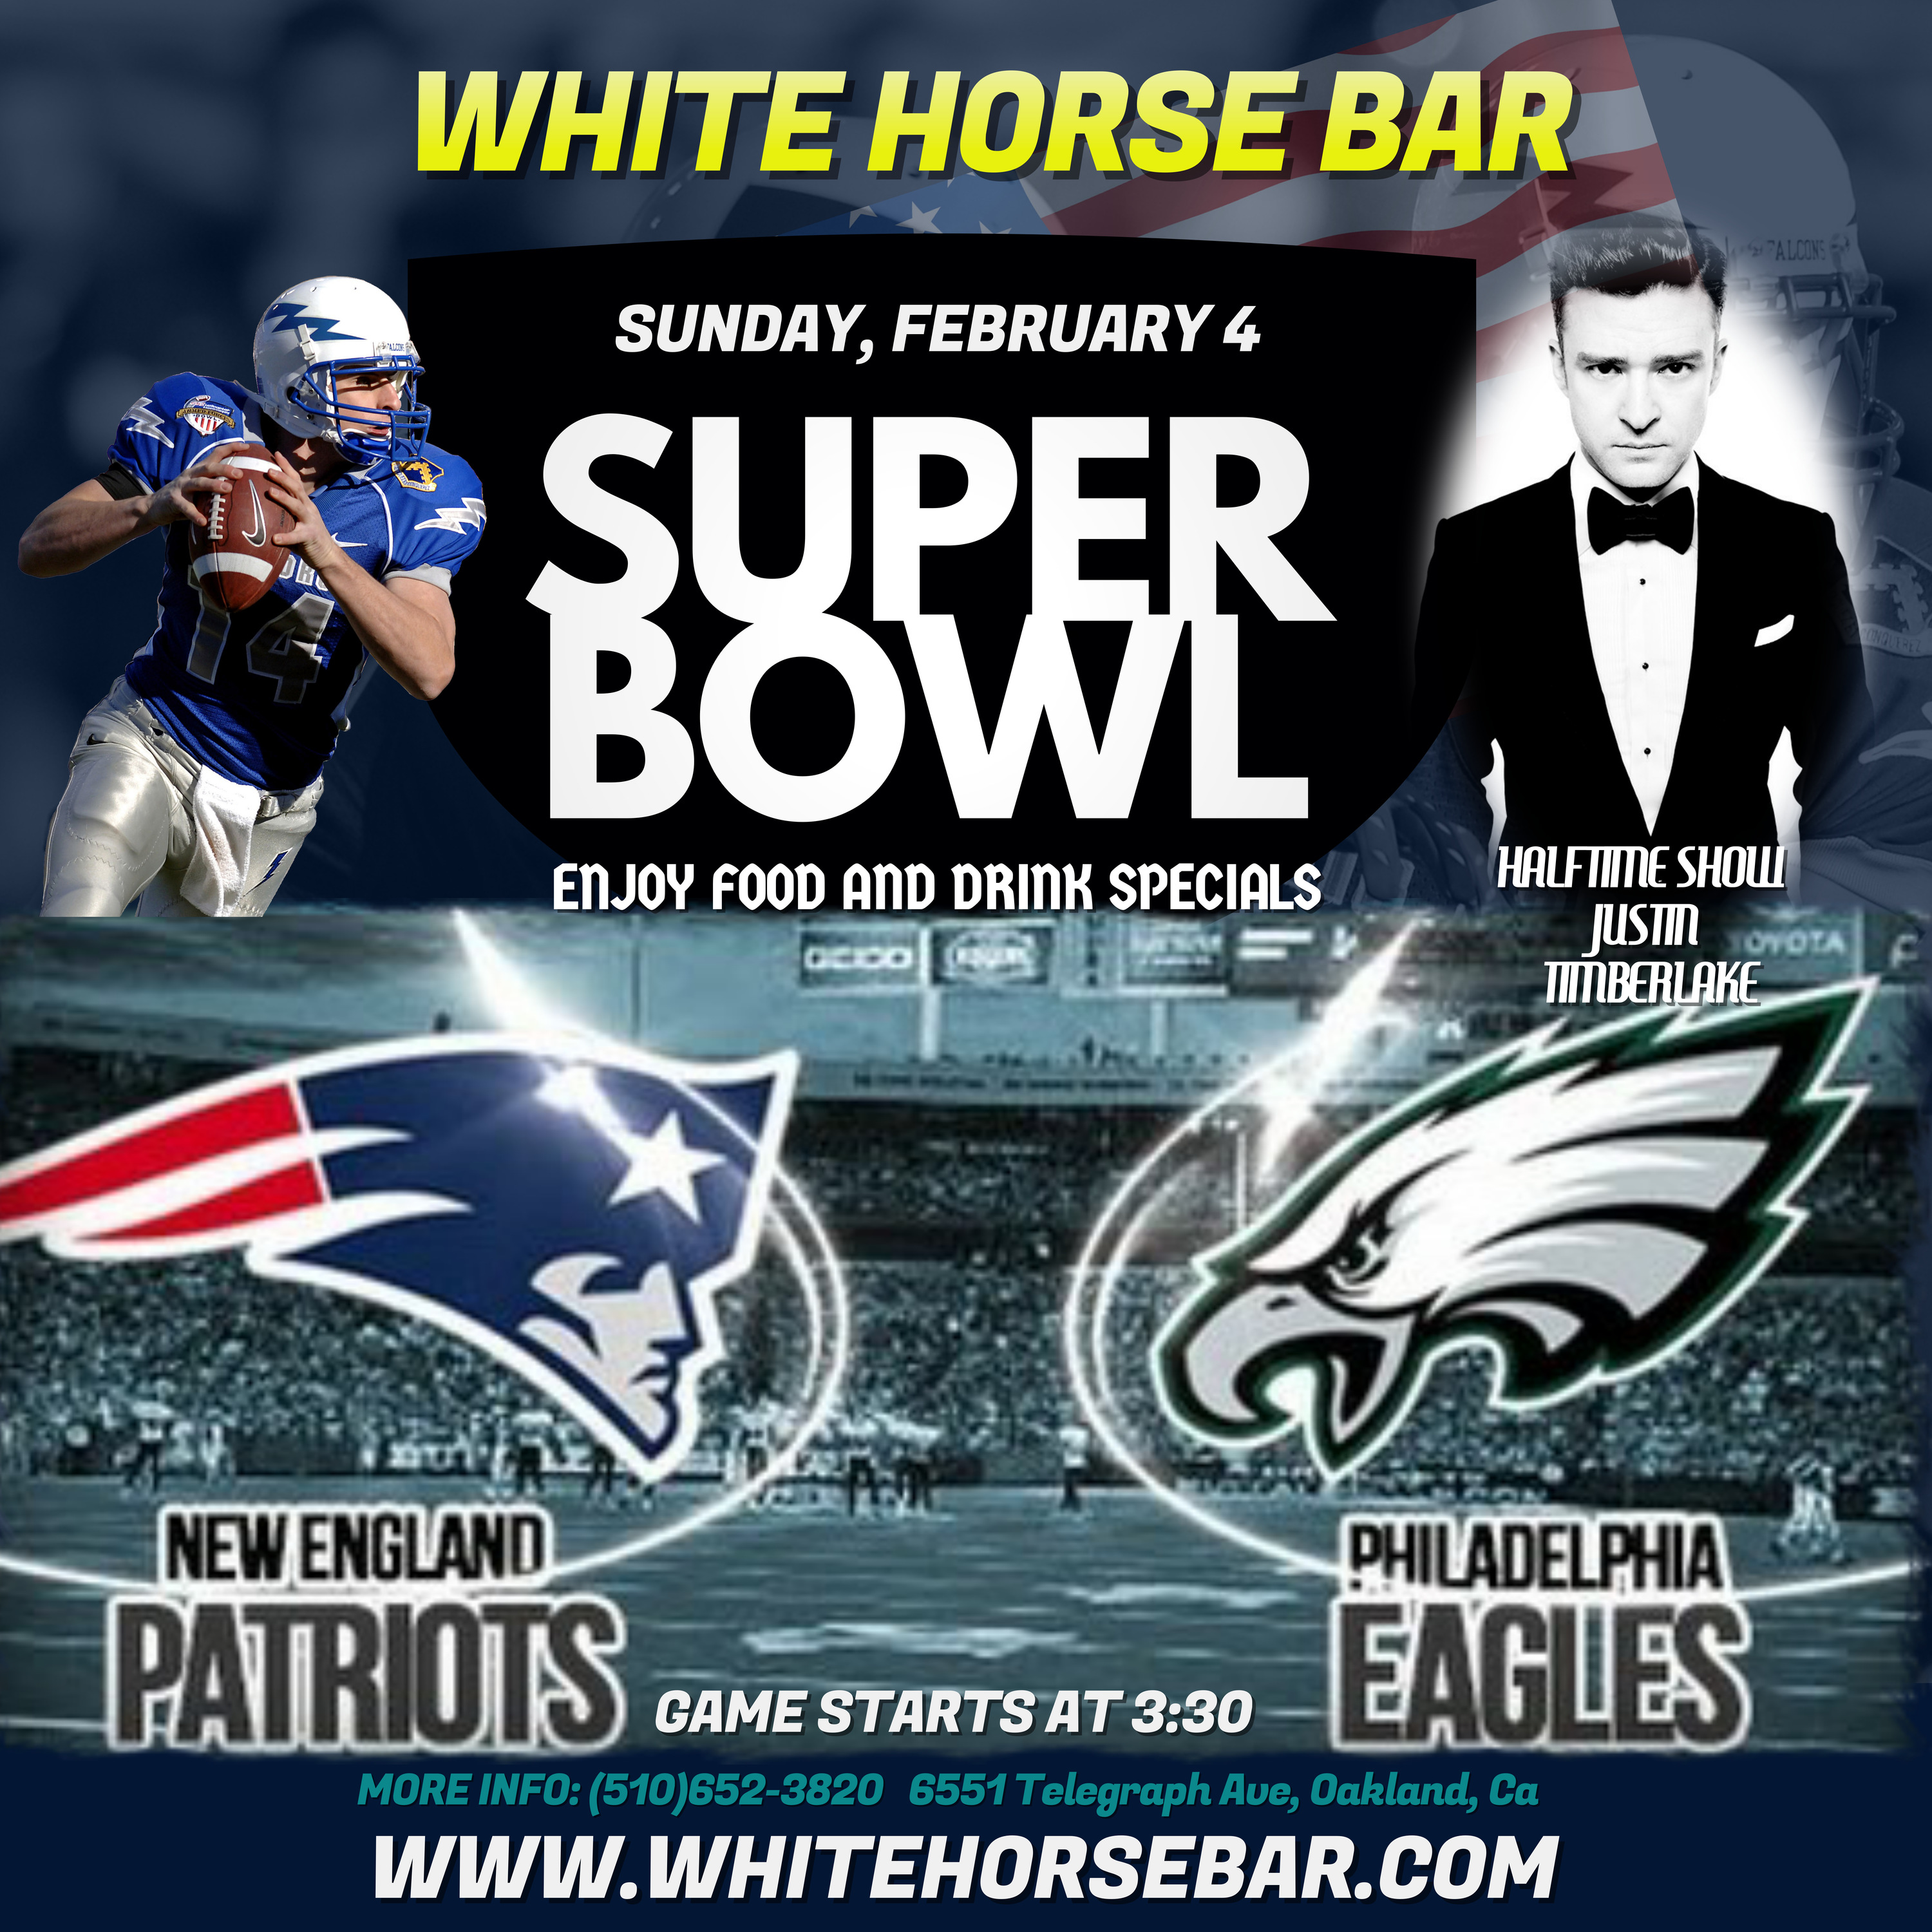 Exceptional Make At Our Annual Owl Viewing Throw On Your Jersey Come Watch Game On Horse Super Bowl Party Horse Bar Come Represent Your Team nice food Super Bowl Party